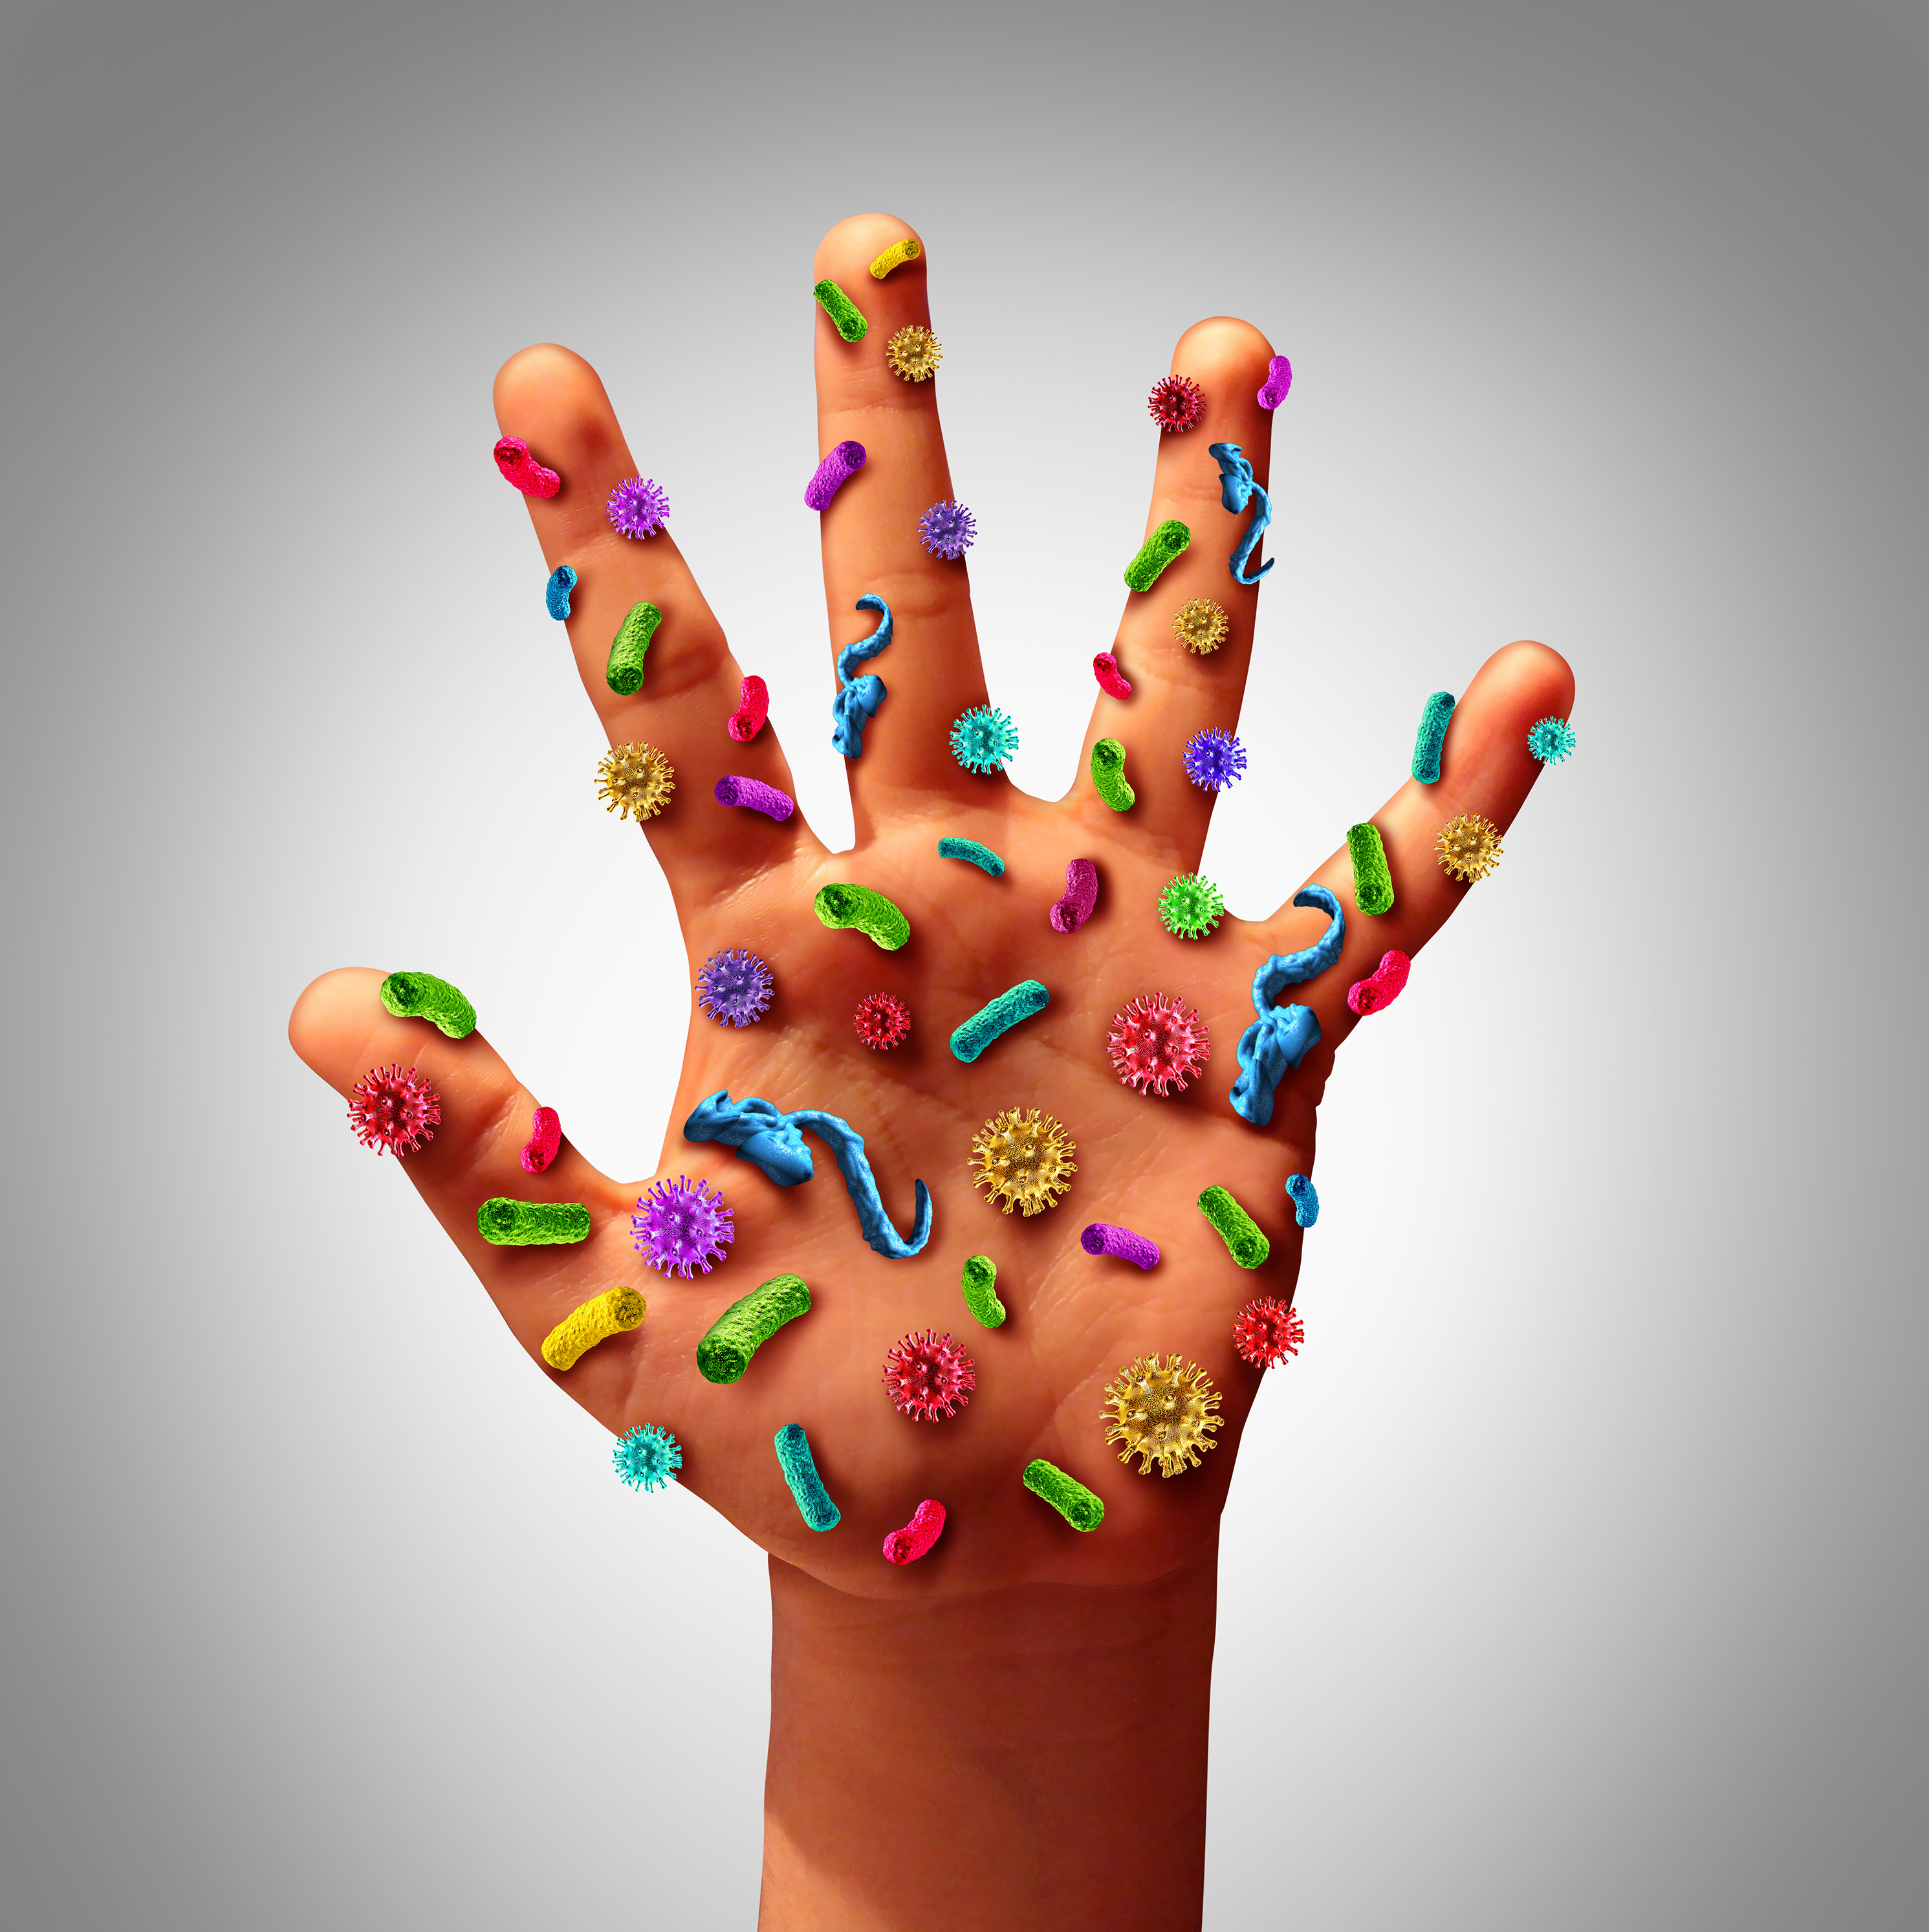 """""""Hand Washing for kids"""" image of a hand covered with cartoon germs."""